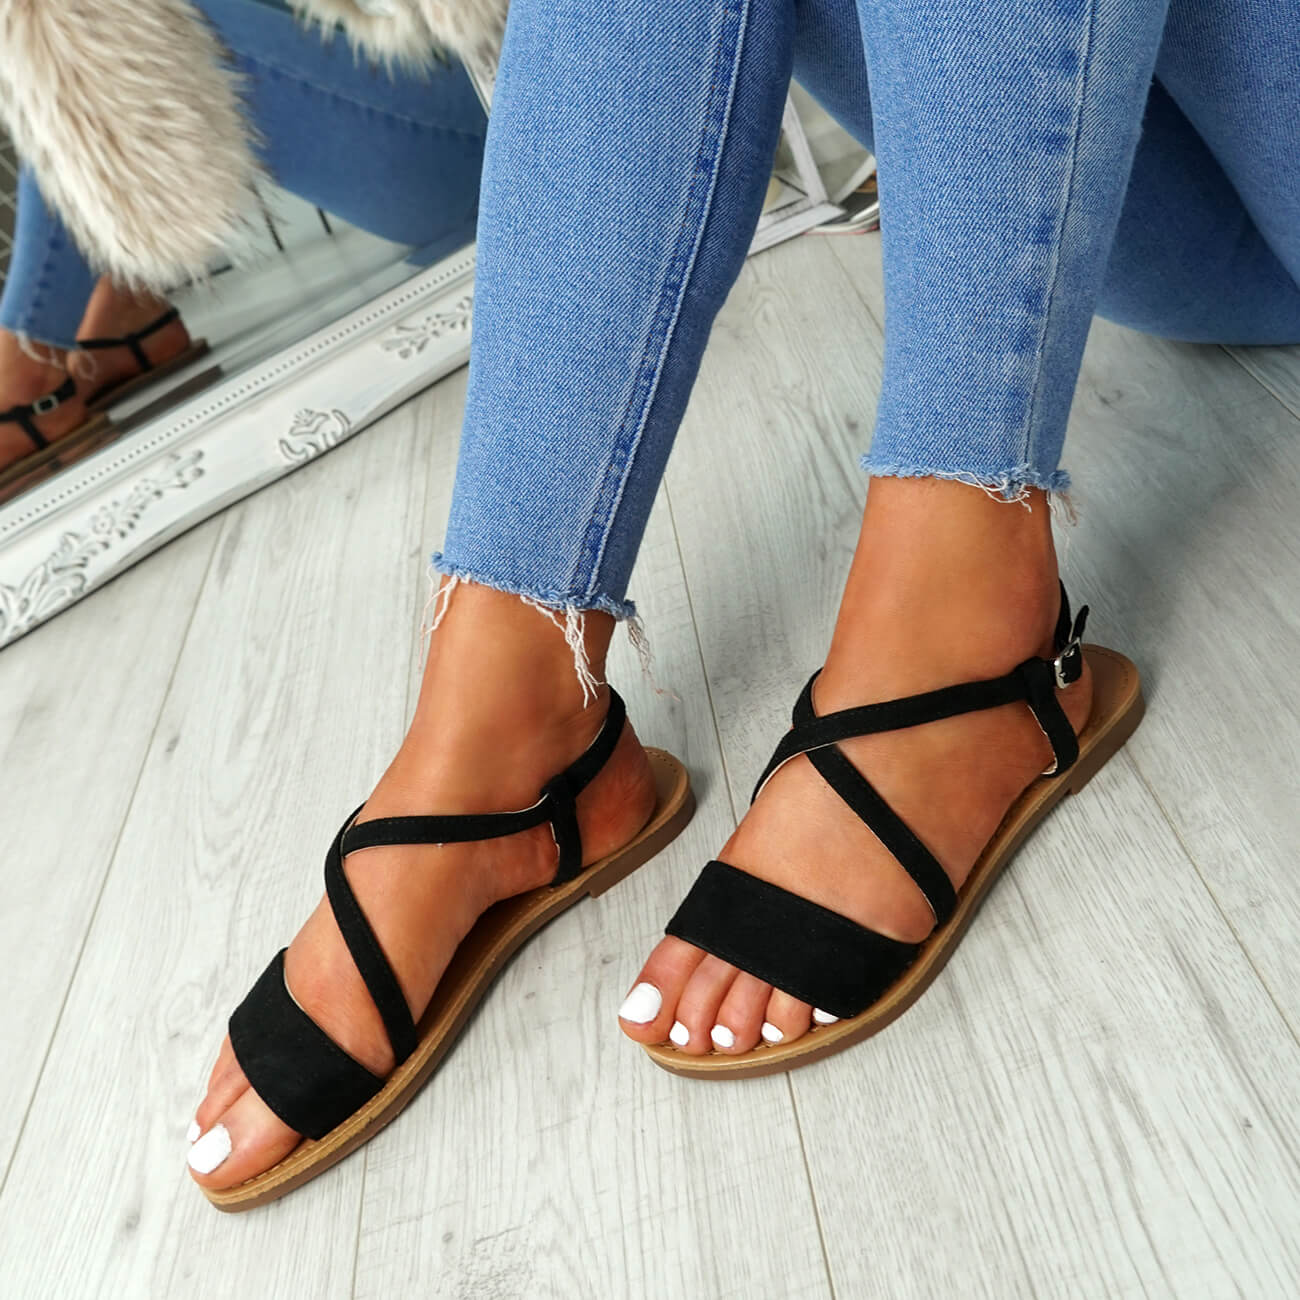 WOMENS-LADIES-ANKLE-STRAP-PEEP-TOE-FLAT-SANDALS-COMFY-SUMMER-SHOES-SIZE thumbnail 9